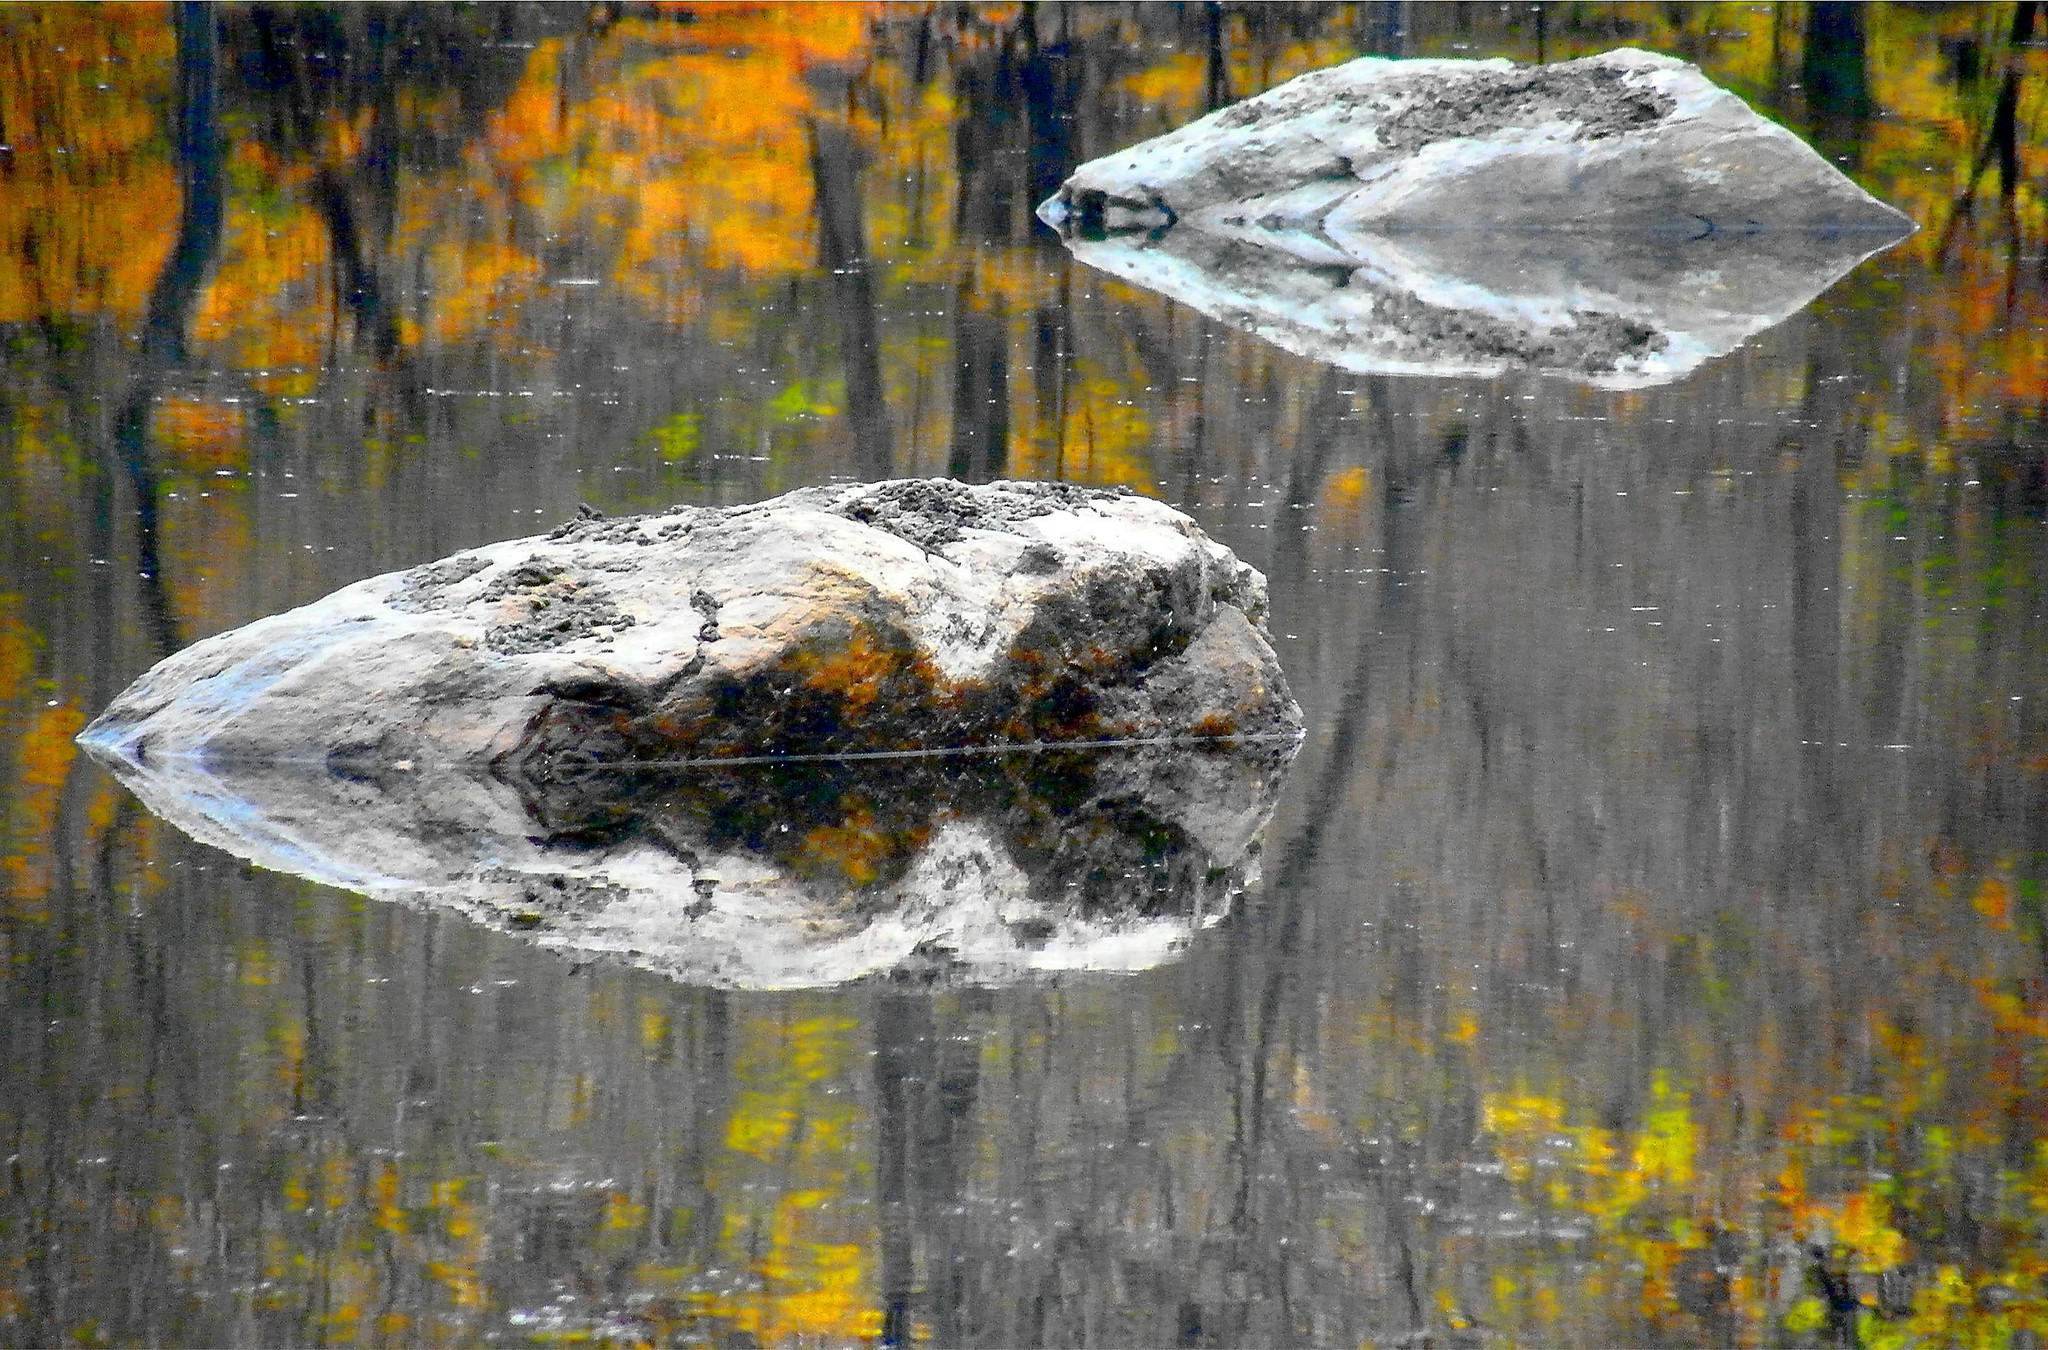 2 Rocks and Their Reflection